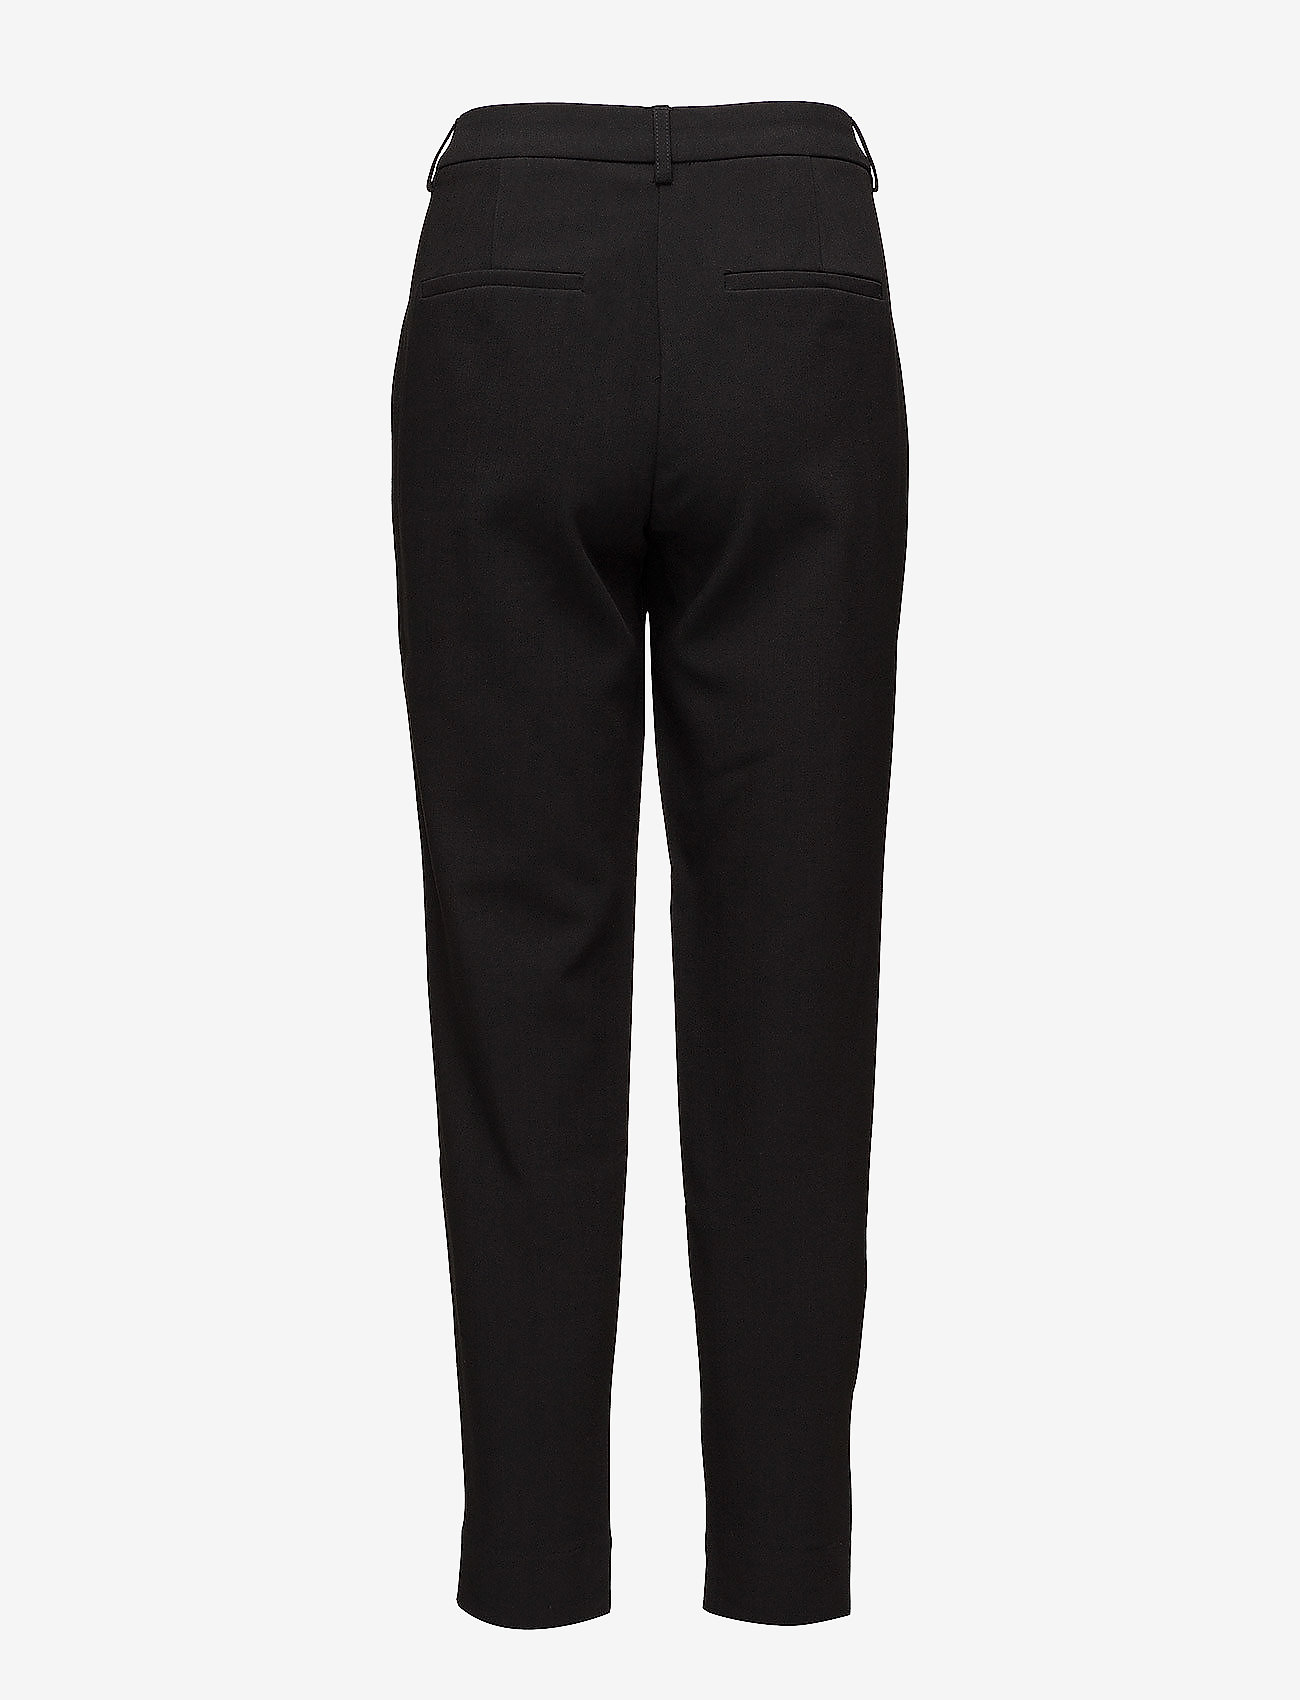 Selected Femme - SLFAMILA MW PANT NOOS - straight leg trousers - black - 1